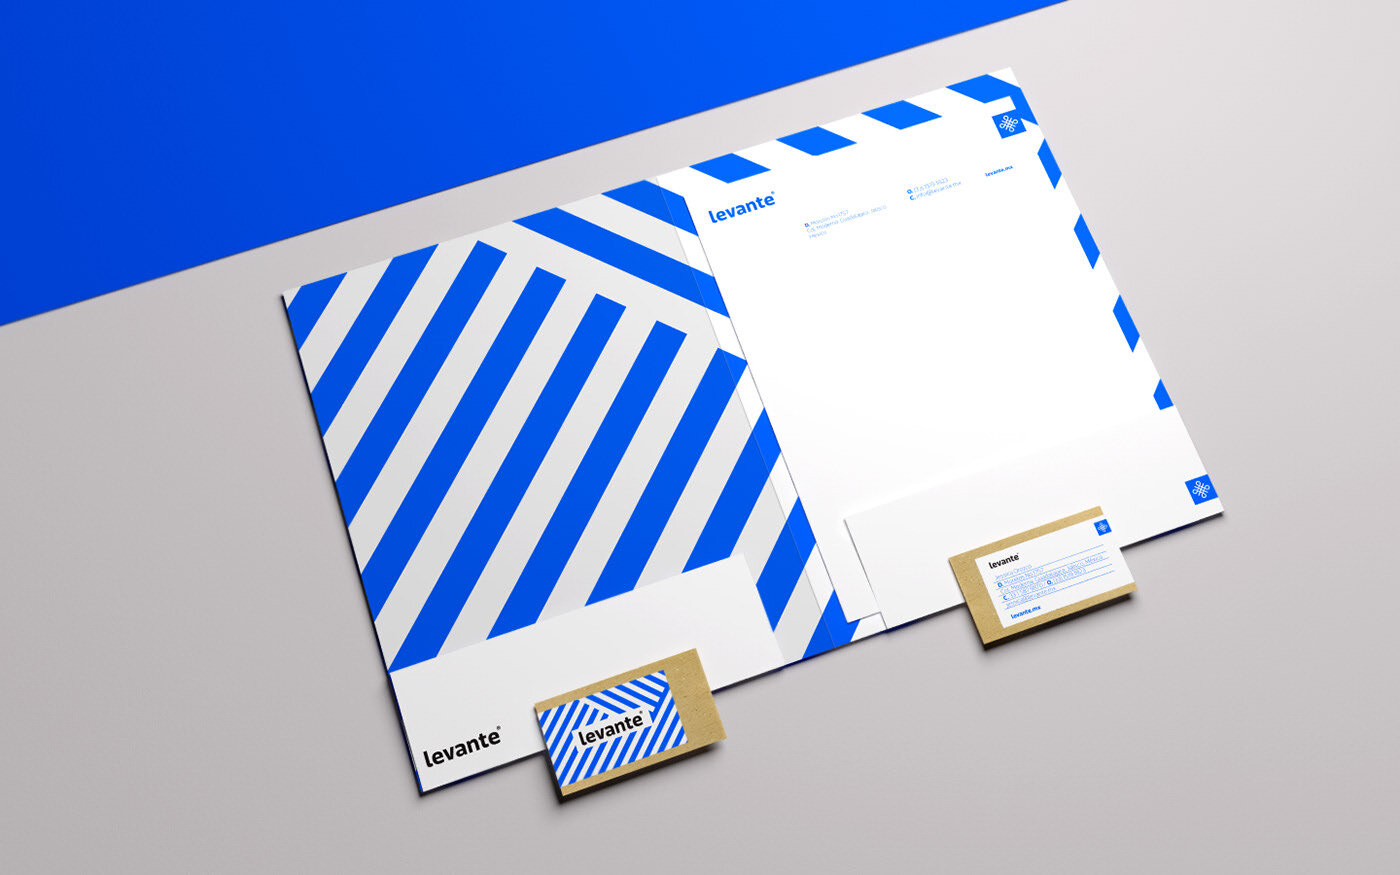 Levante project  by Menta Picante. Featured in the Brand Cards.